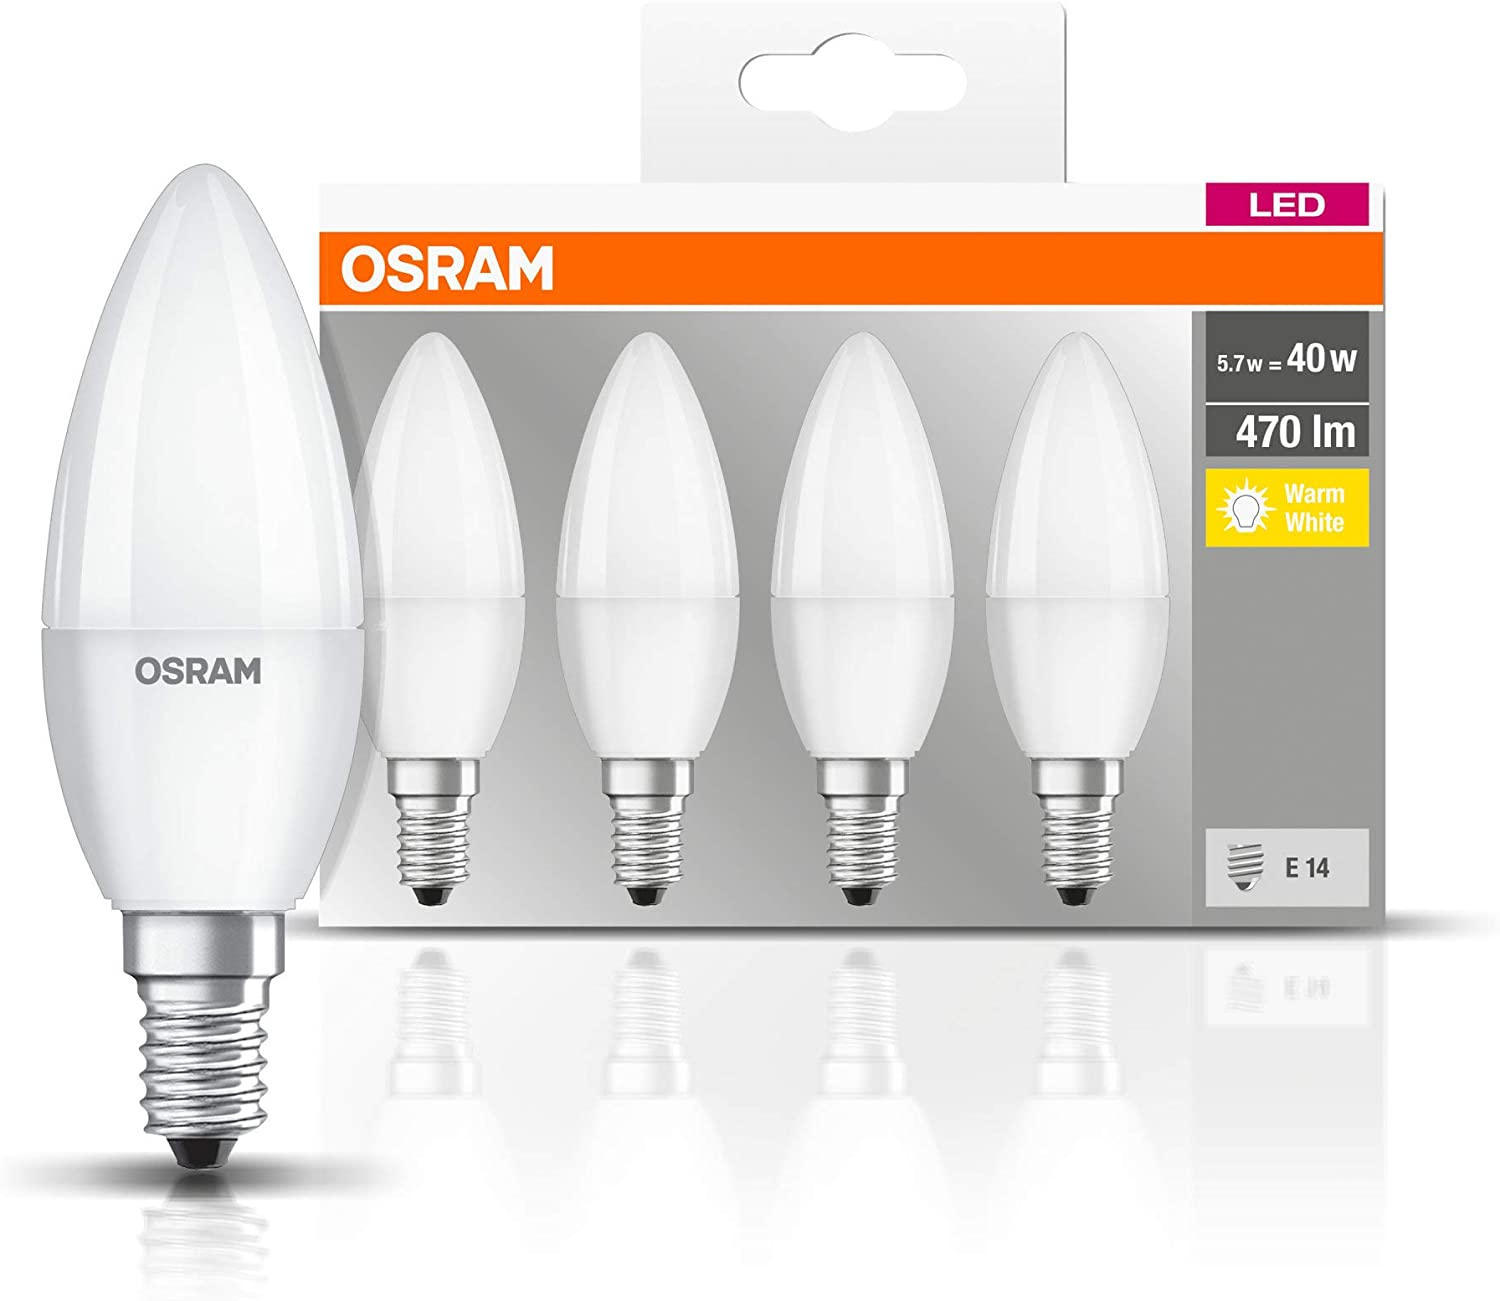 Osram Led Base Classic B Led Lamp In Candle Shape With E14 Base